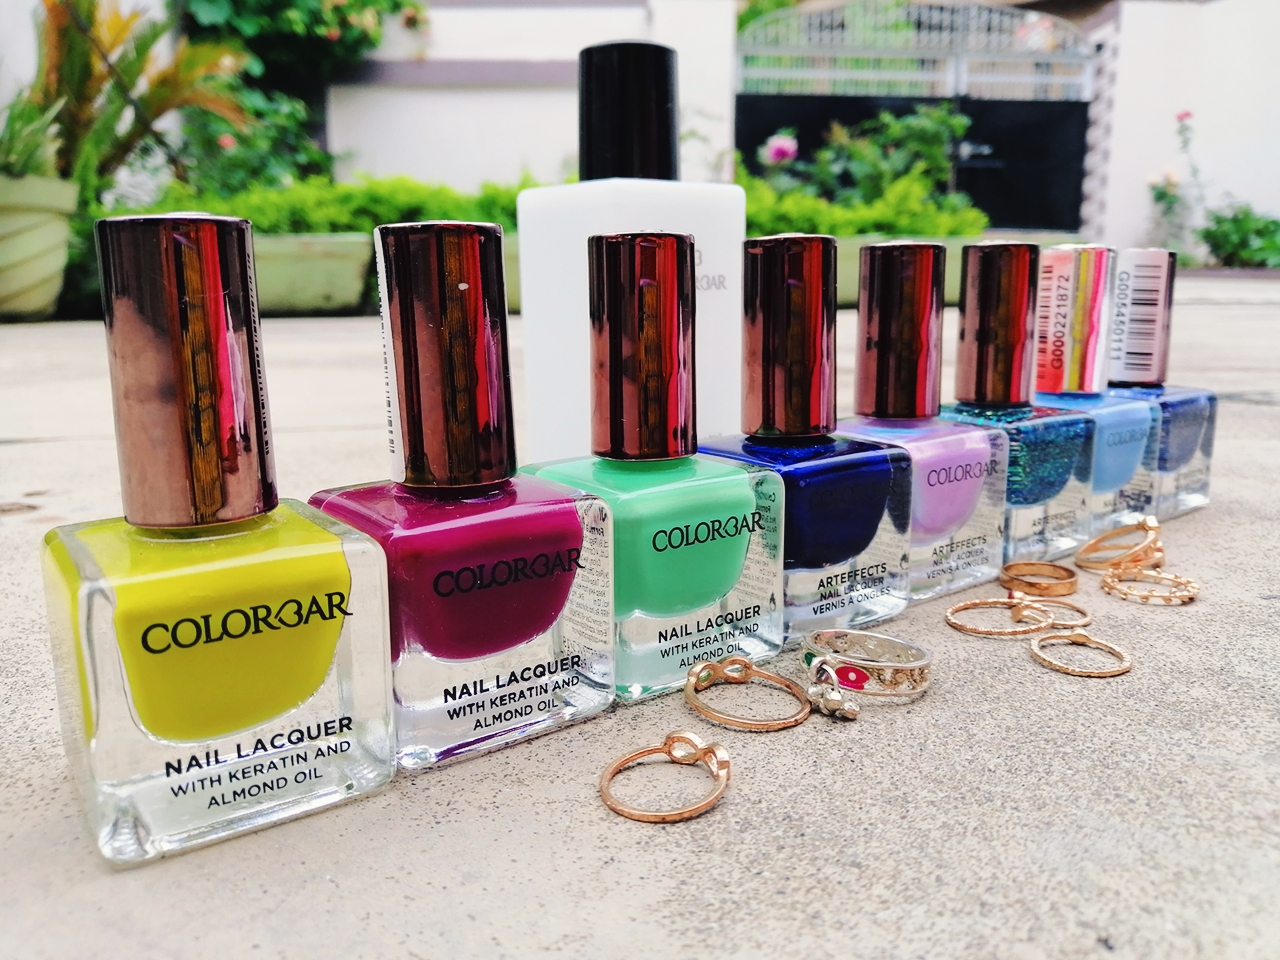 Colorbar Arteffects Nail Lacquer Swatches Review New Colorbar Nail Polishes